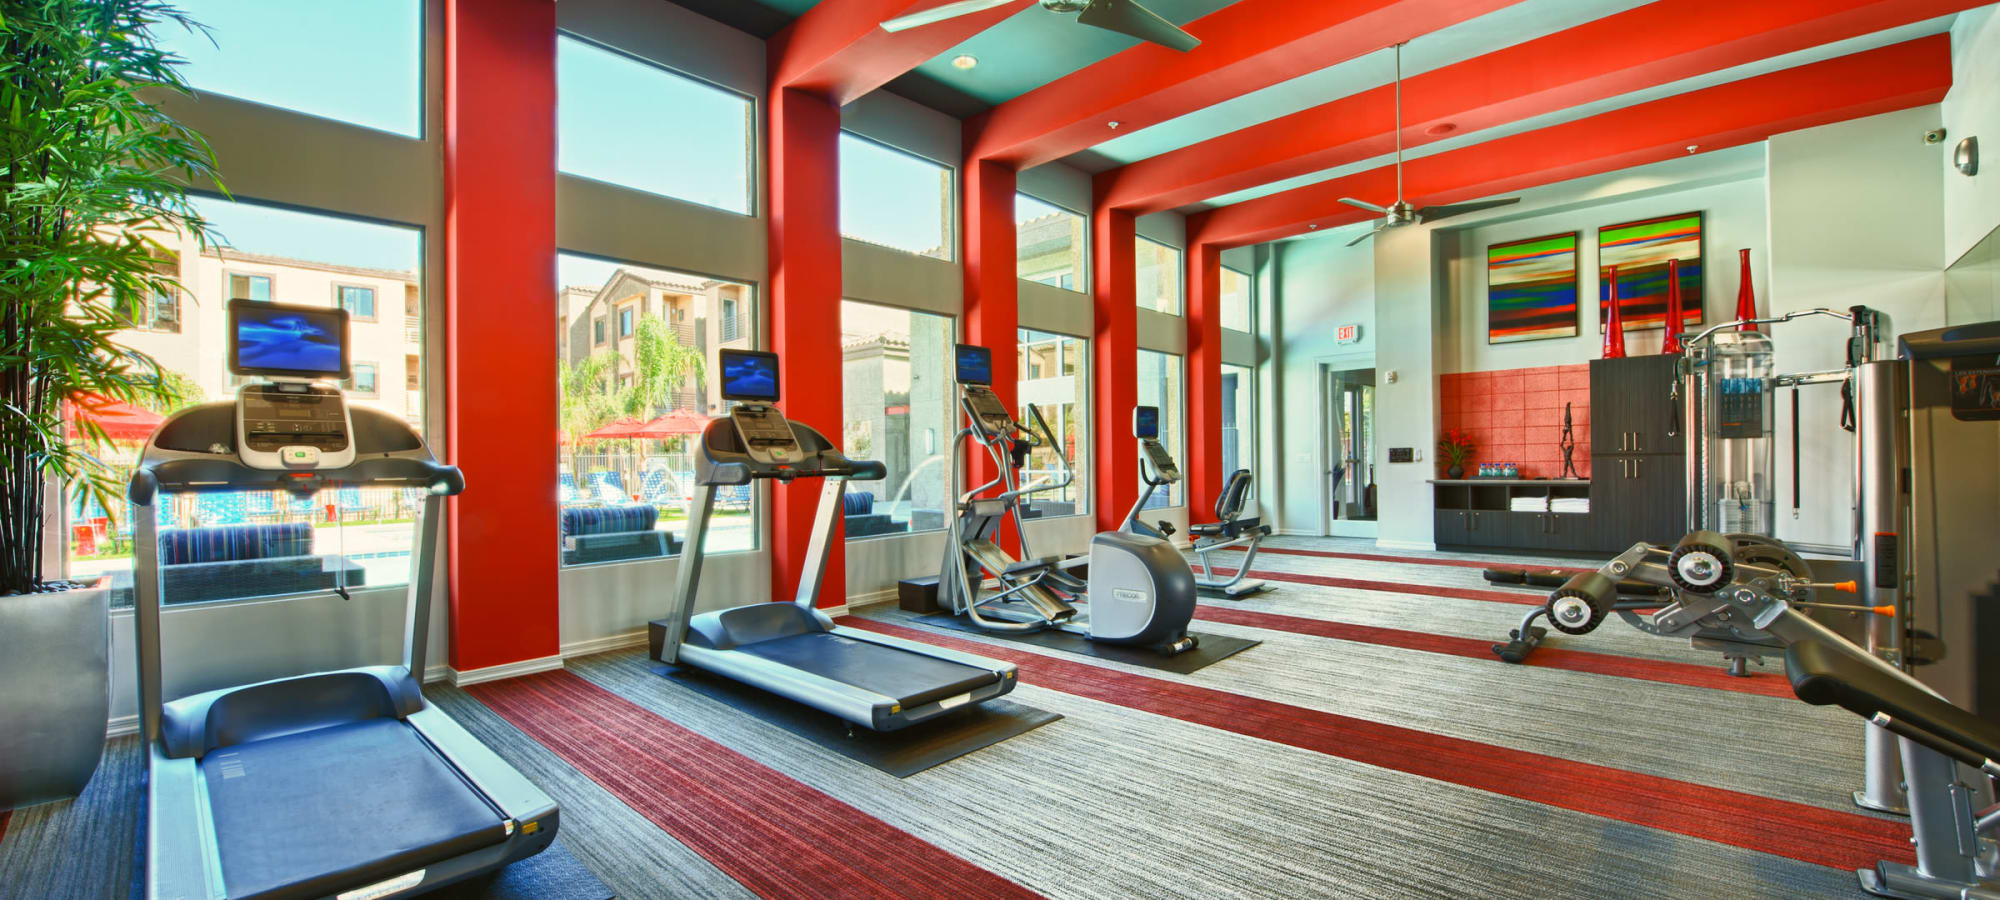 Exercise equipment in the gym at Avenue 25 Apartments in Phoenix, Arizona